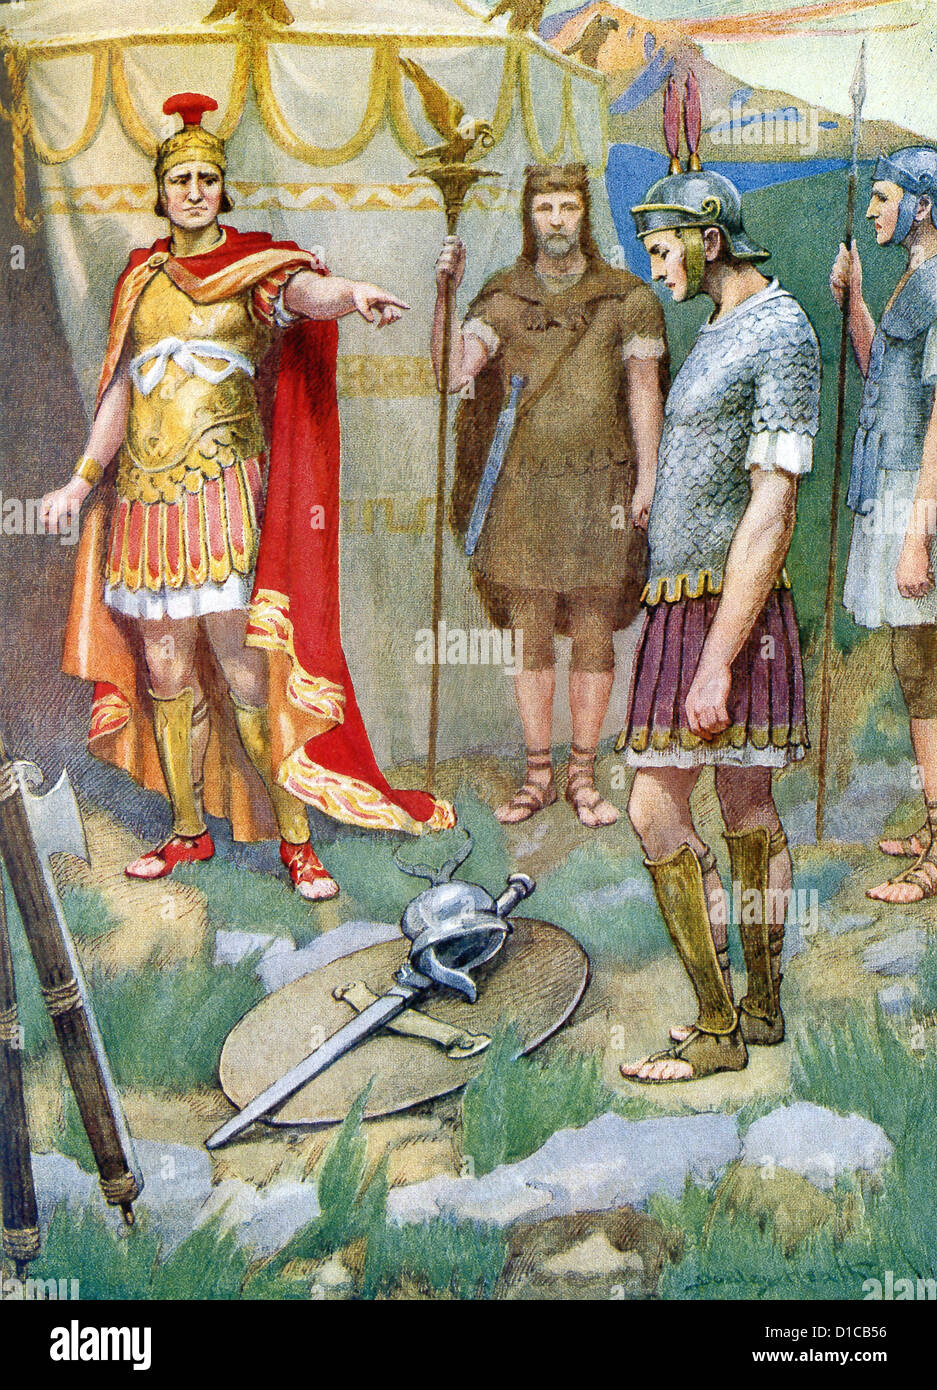 Roman consul Manlius Torquatus condemns his son to death for disobeying military rules. - Stock Image